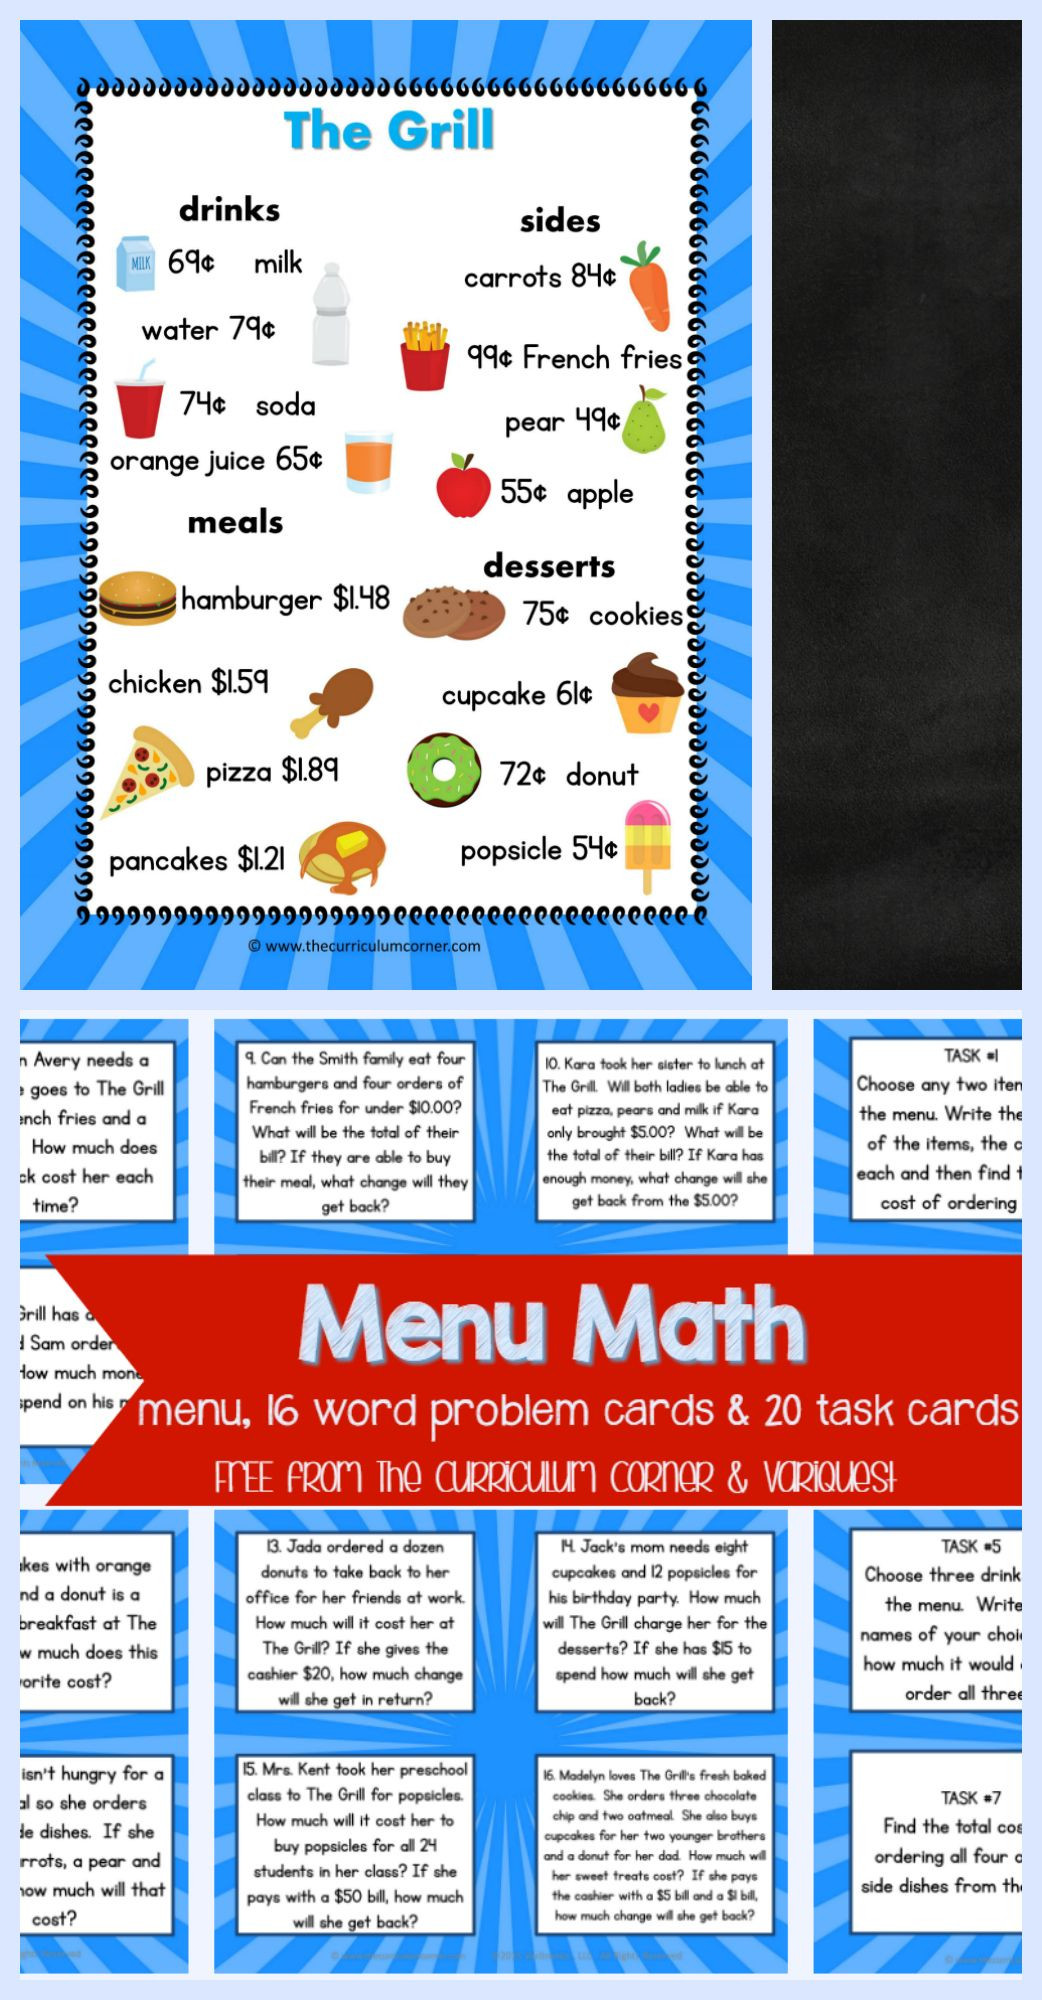 Restaurant Menu Math Worksheets Menu Math for 4th & 5th Graders